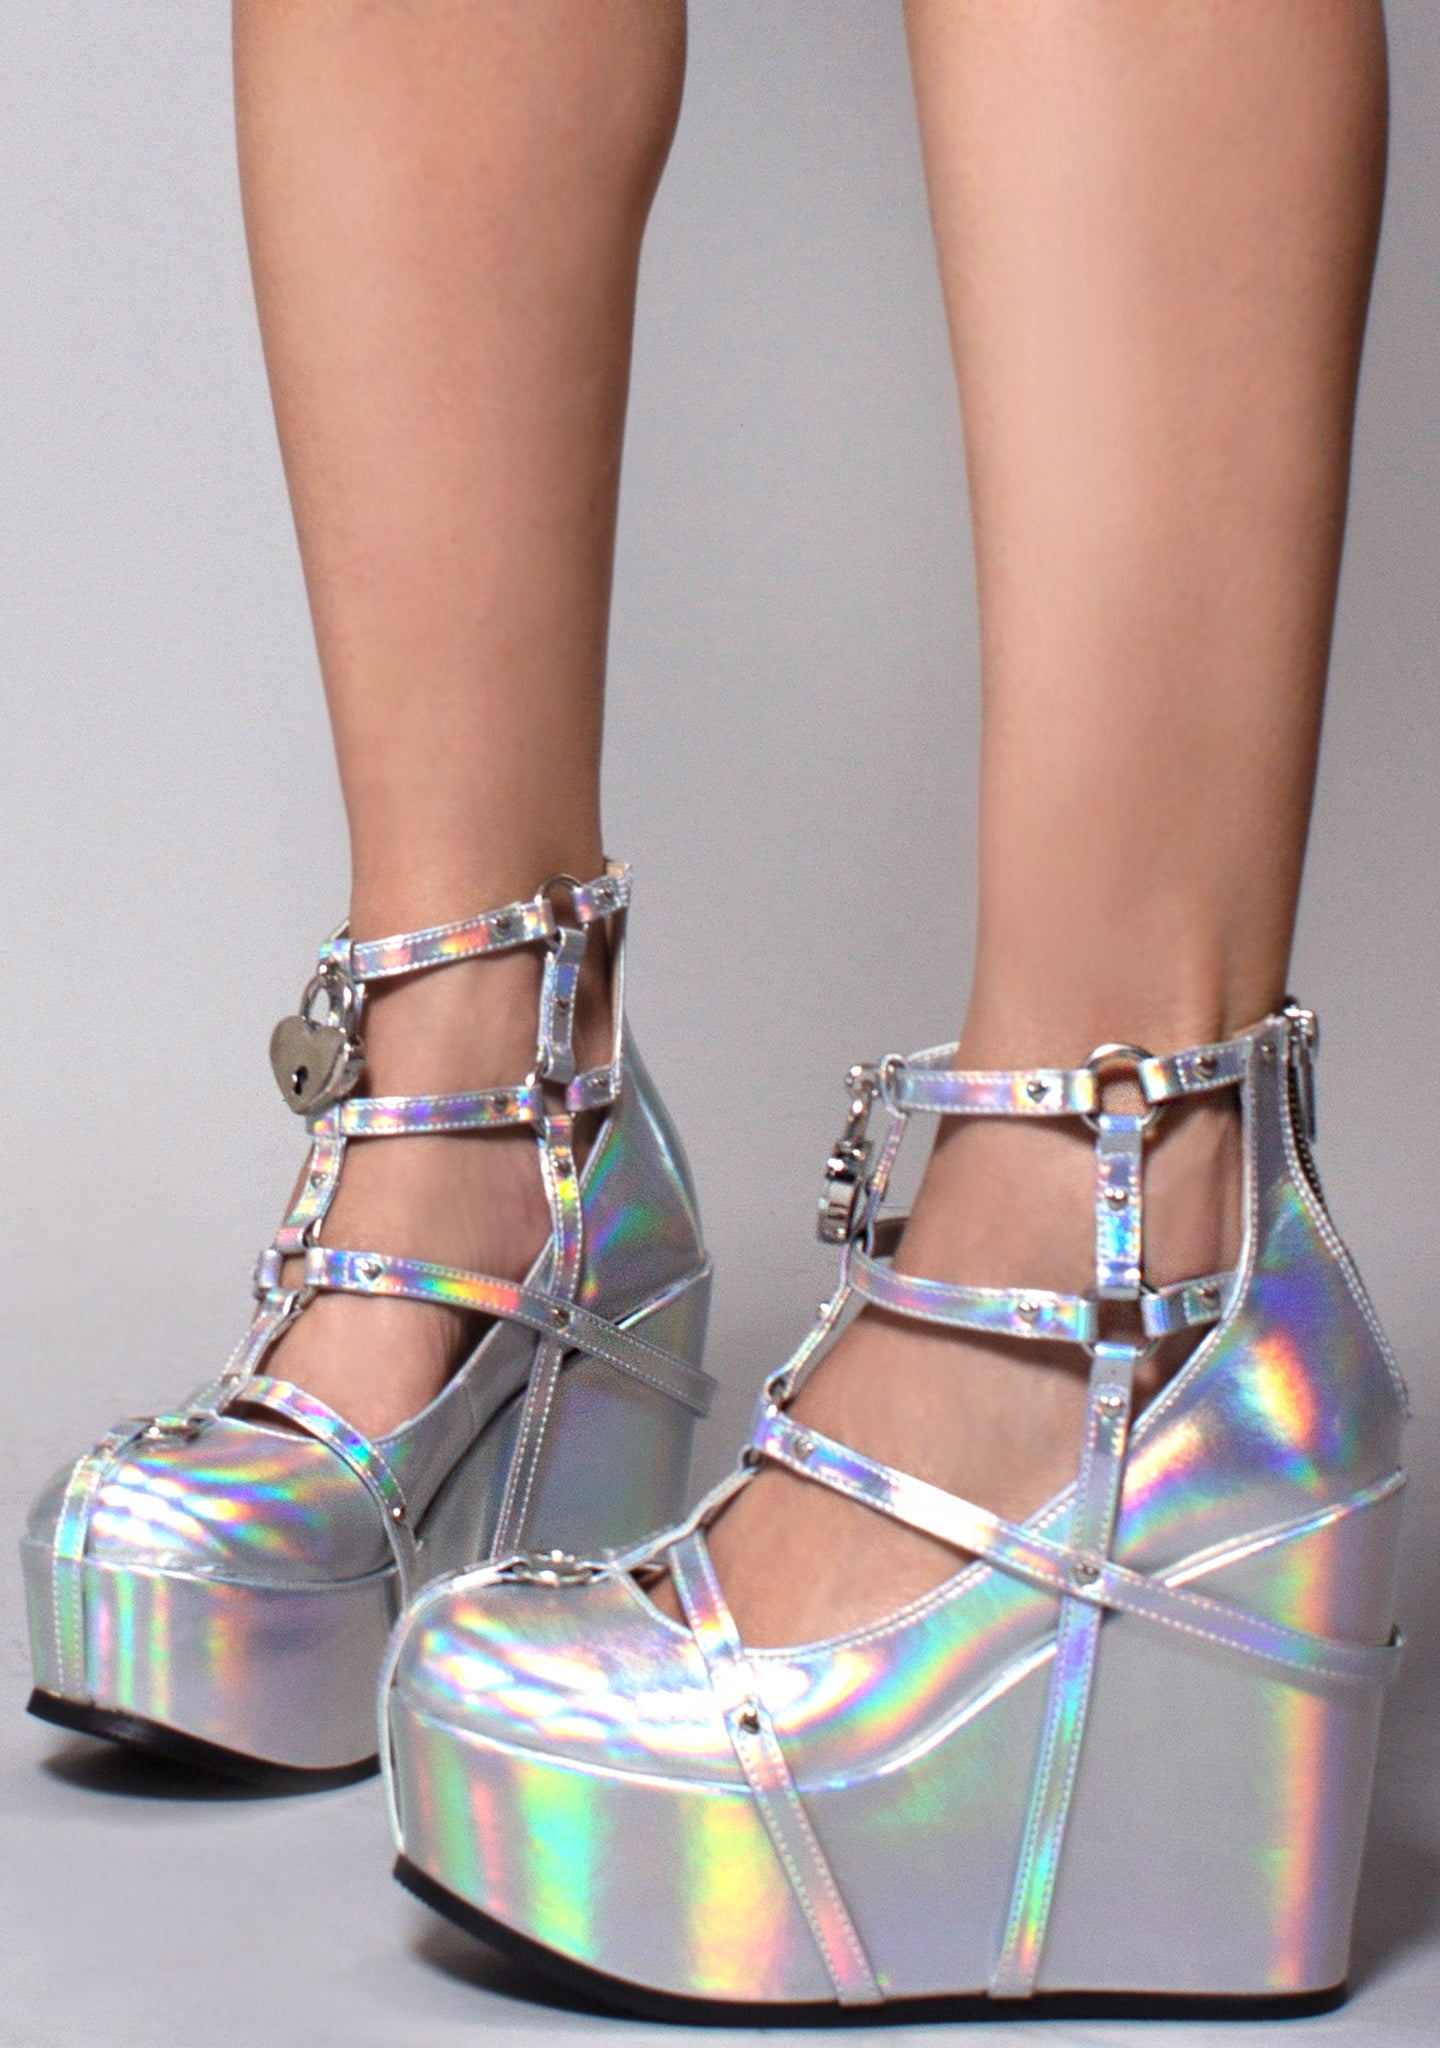 Demonia Poison Caged Wedge Platform Heels in Silver Hologram